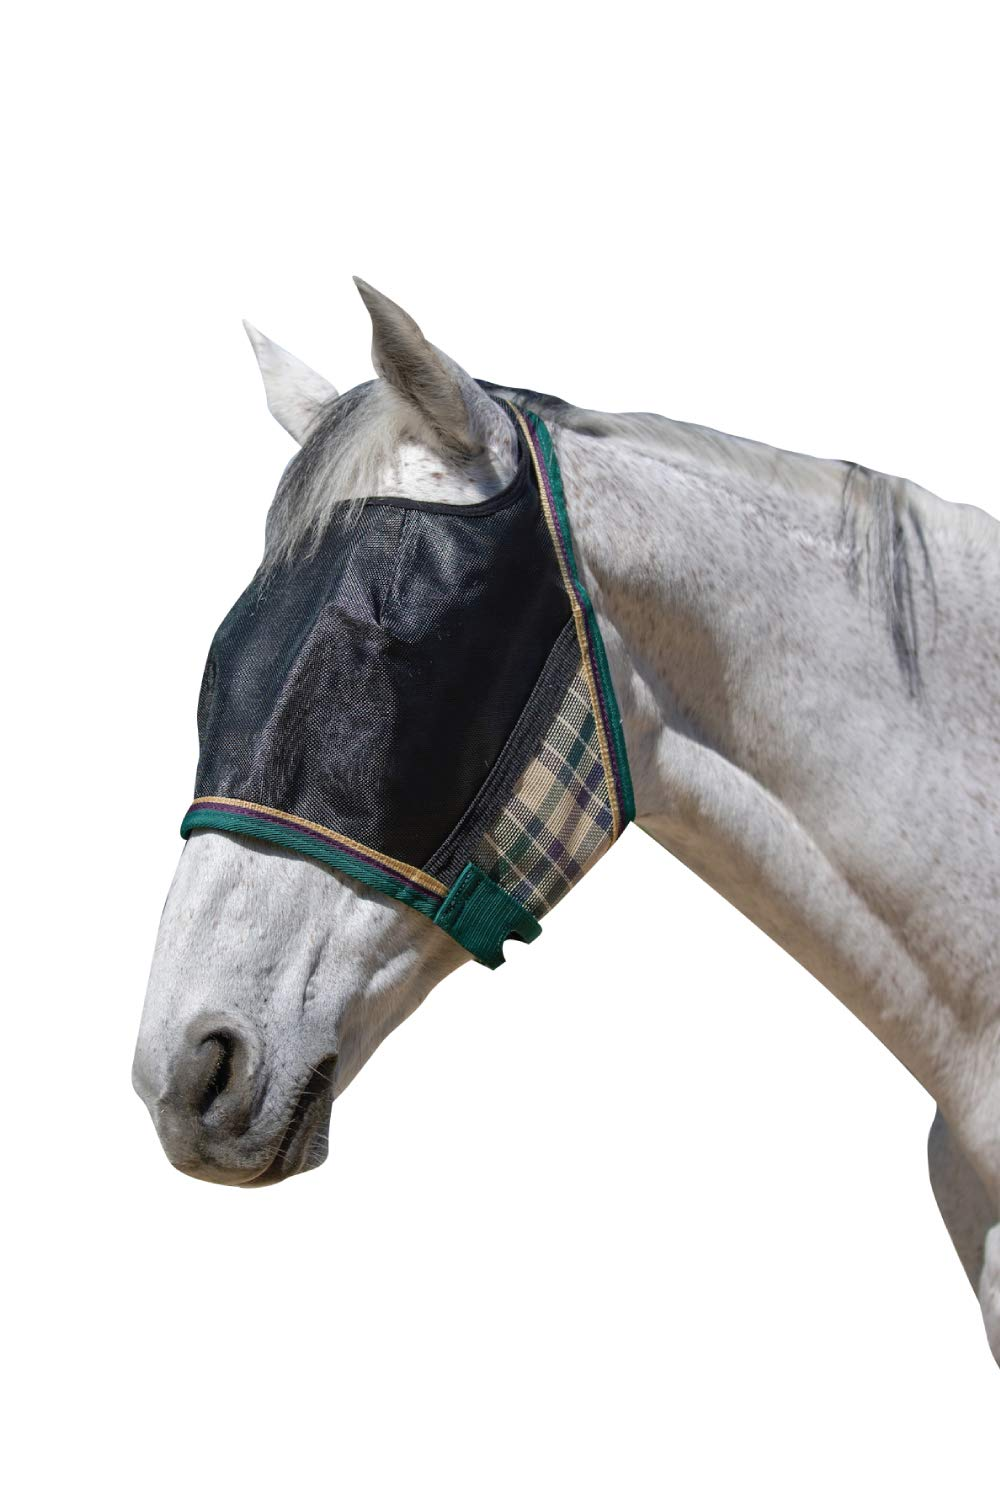 Kensington UViator Protective Fly Mask - Newest UV Solar Screen Protection with a 90% UV Rating - Double Locking CatchMask Fasteners - Non Heat Transferring Fabric (Deluxe Hunter, X-Large)